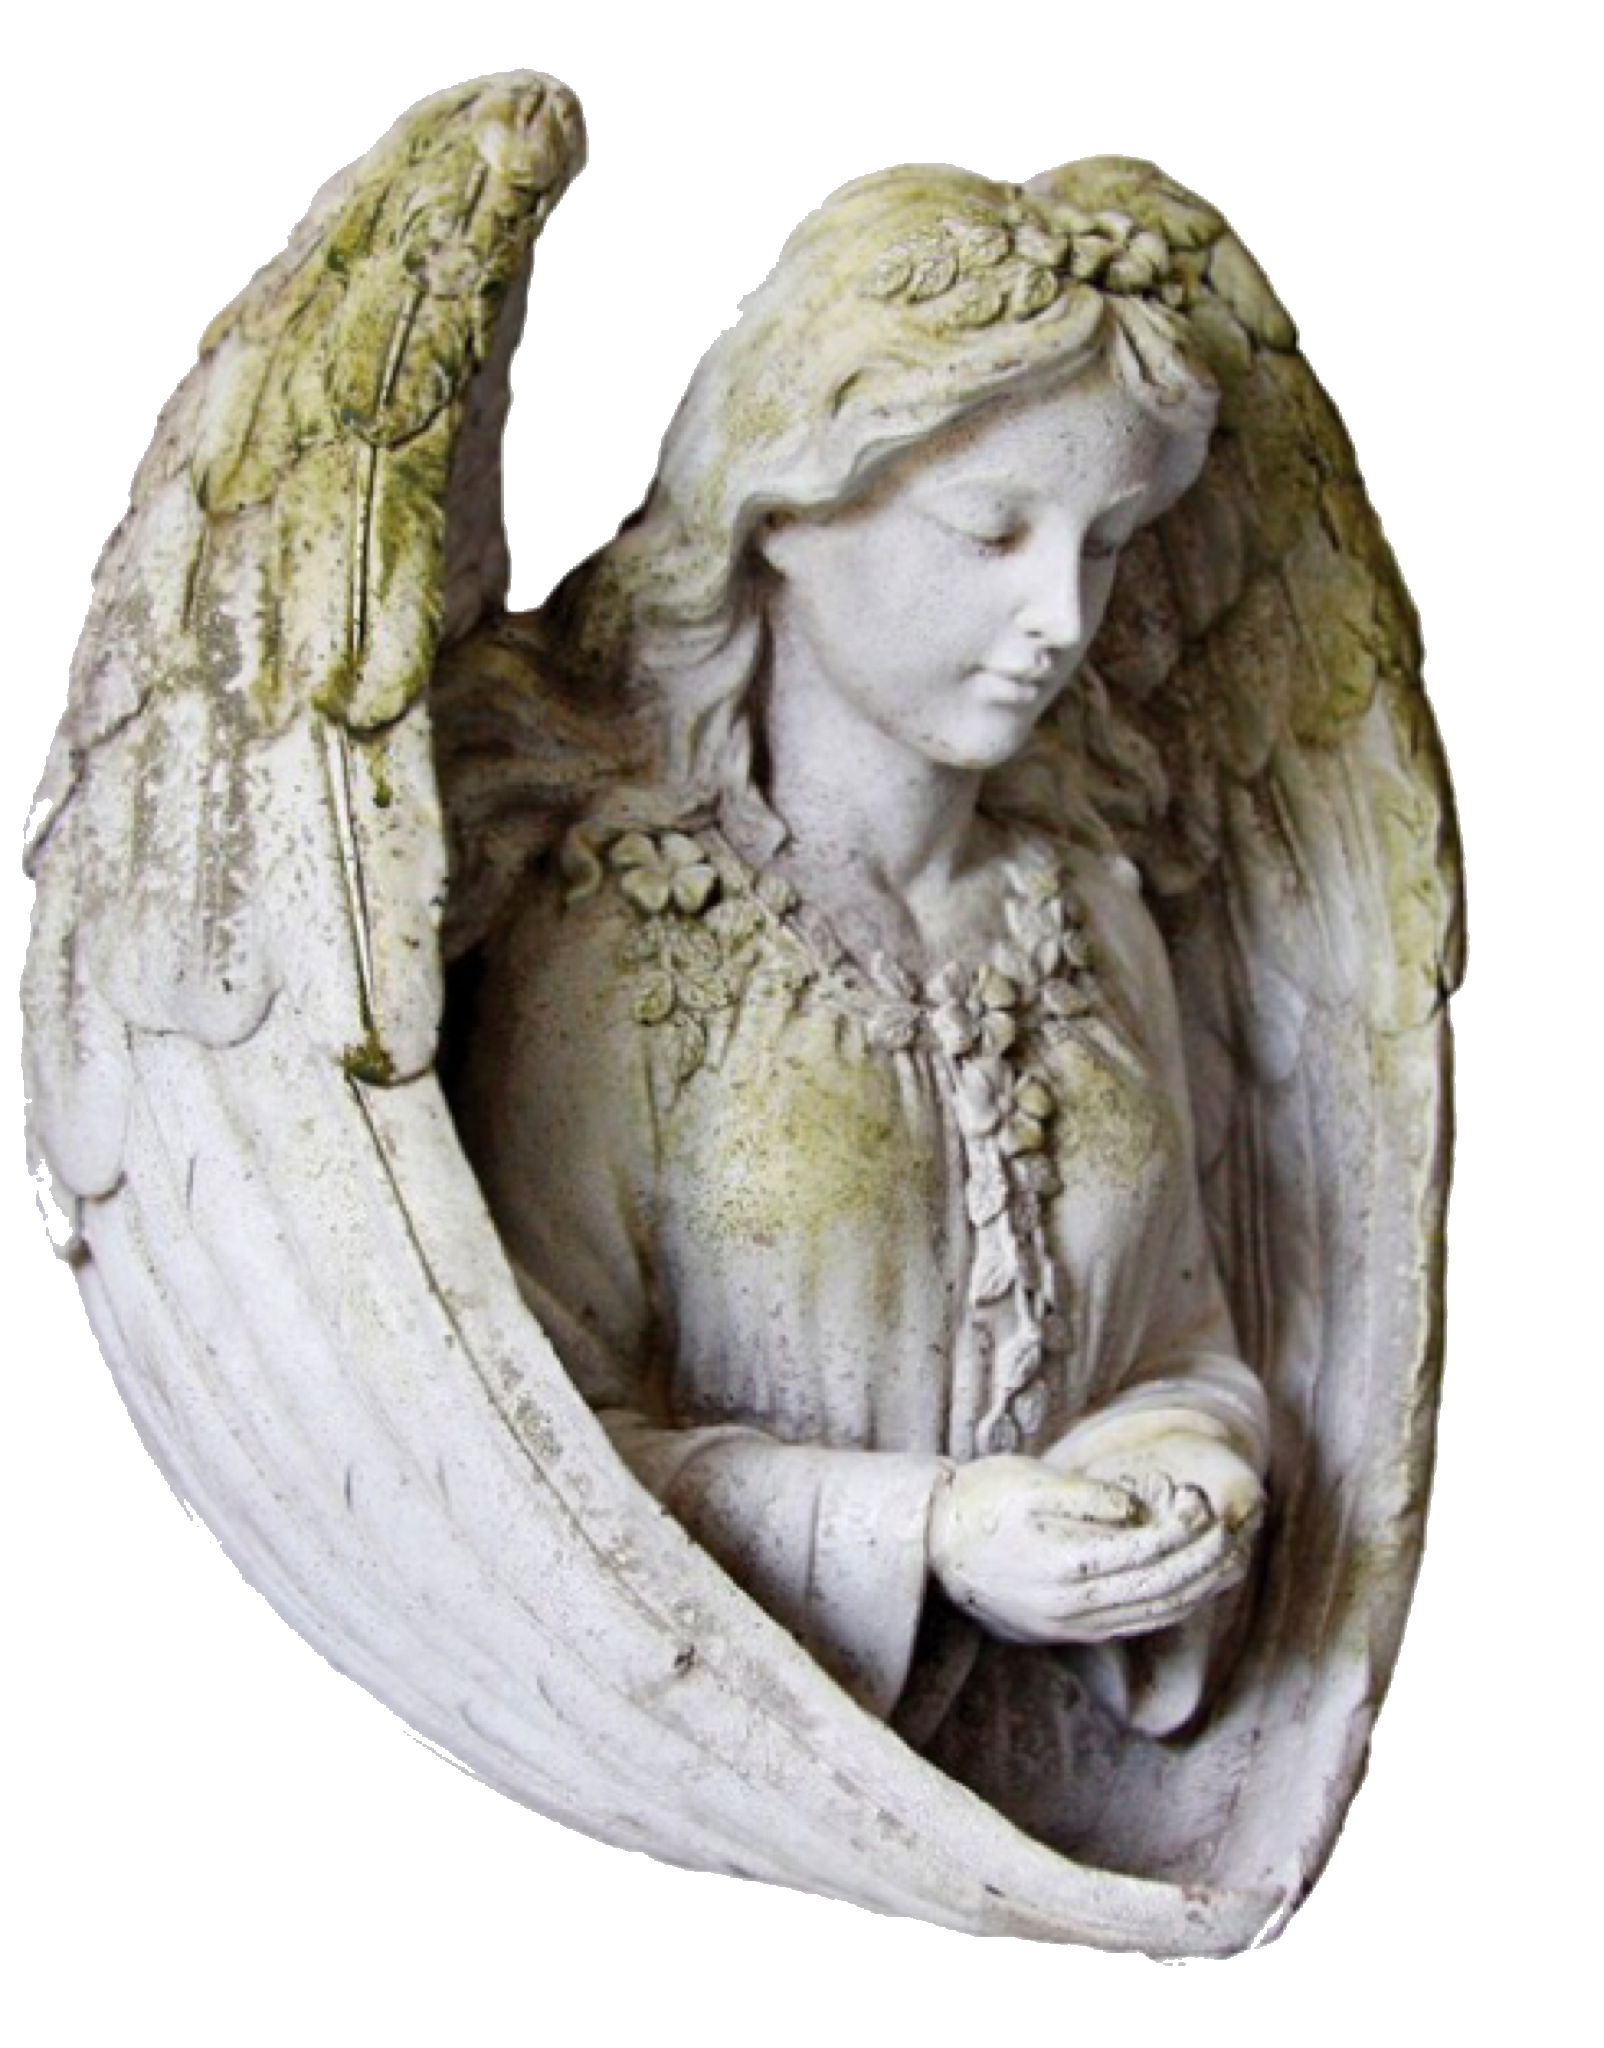 Pin By On Moodboard Pngs Cherub Sculpture Statue Angel Statues